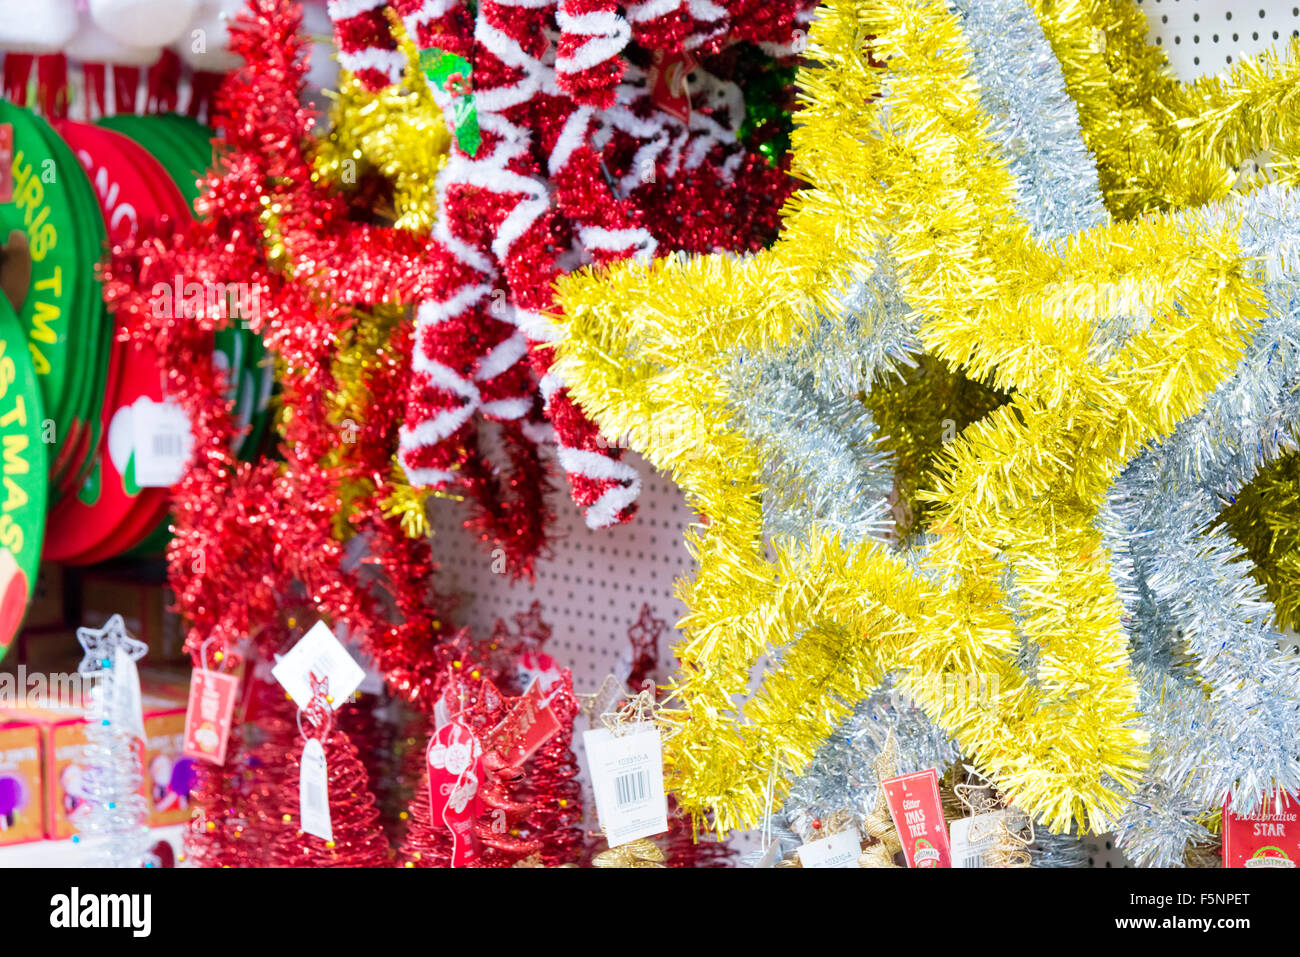 Tinsel star for sale in a store, UK. - Stock Image